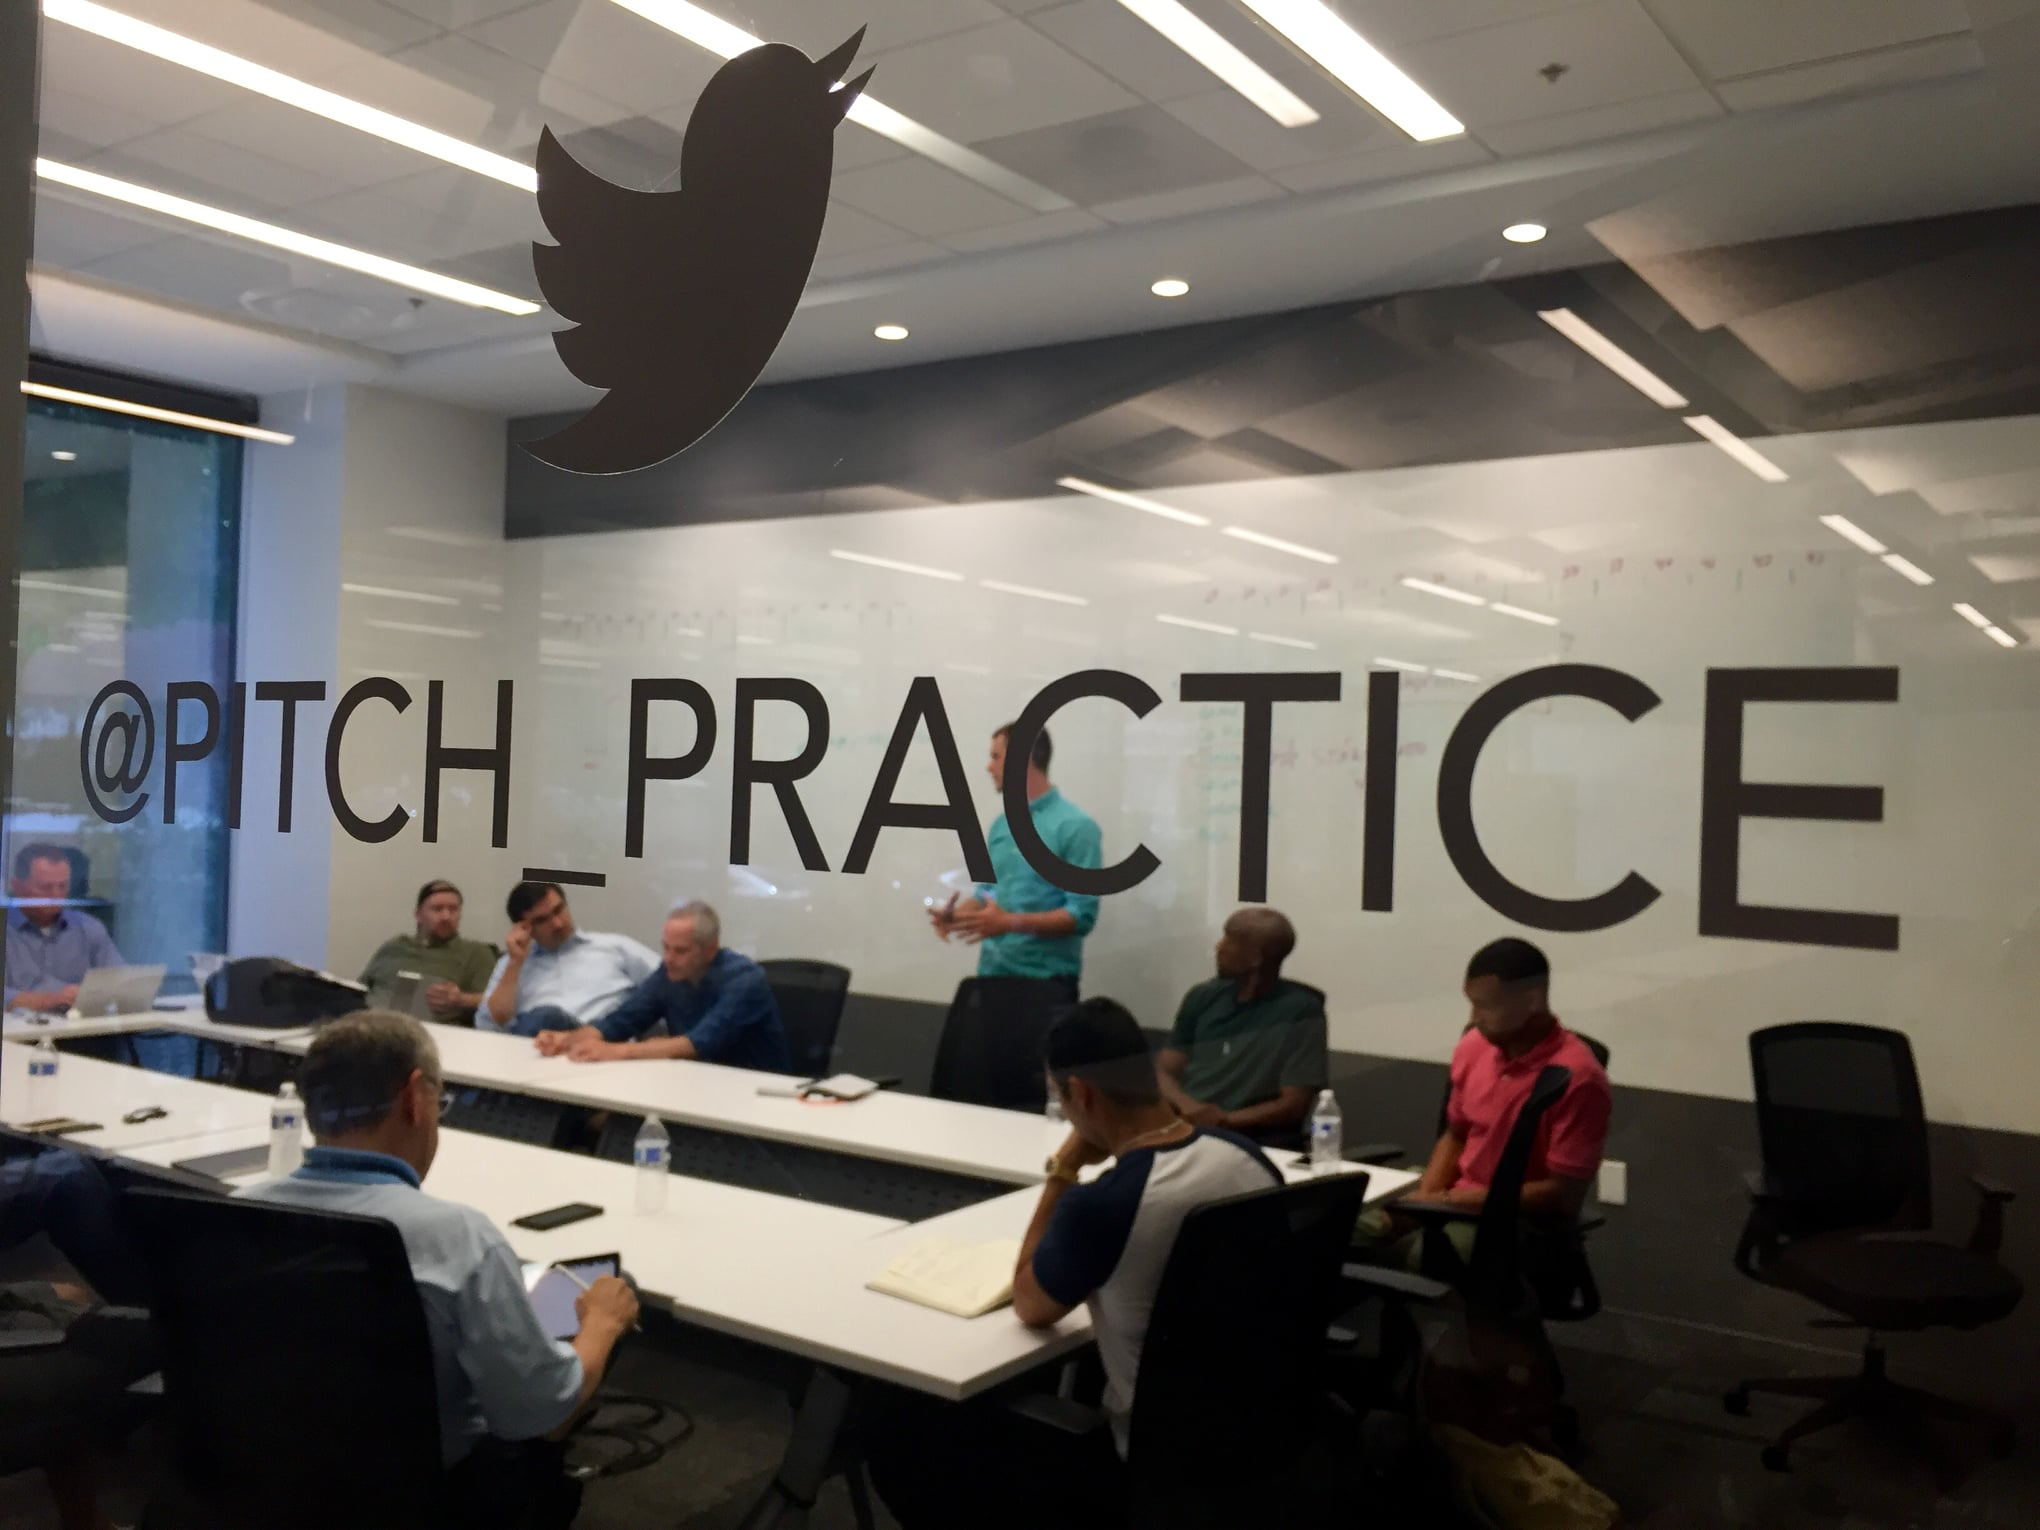 Startup founders practice pitch